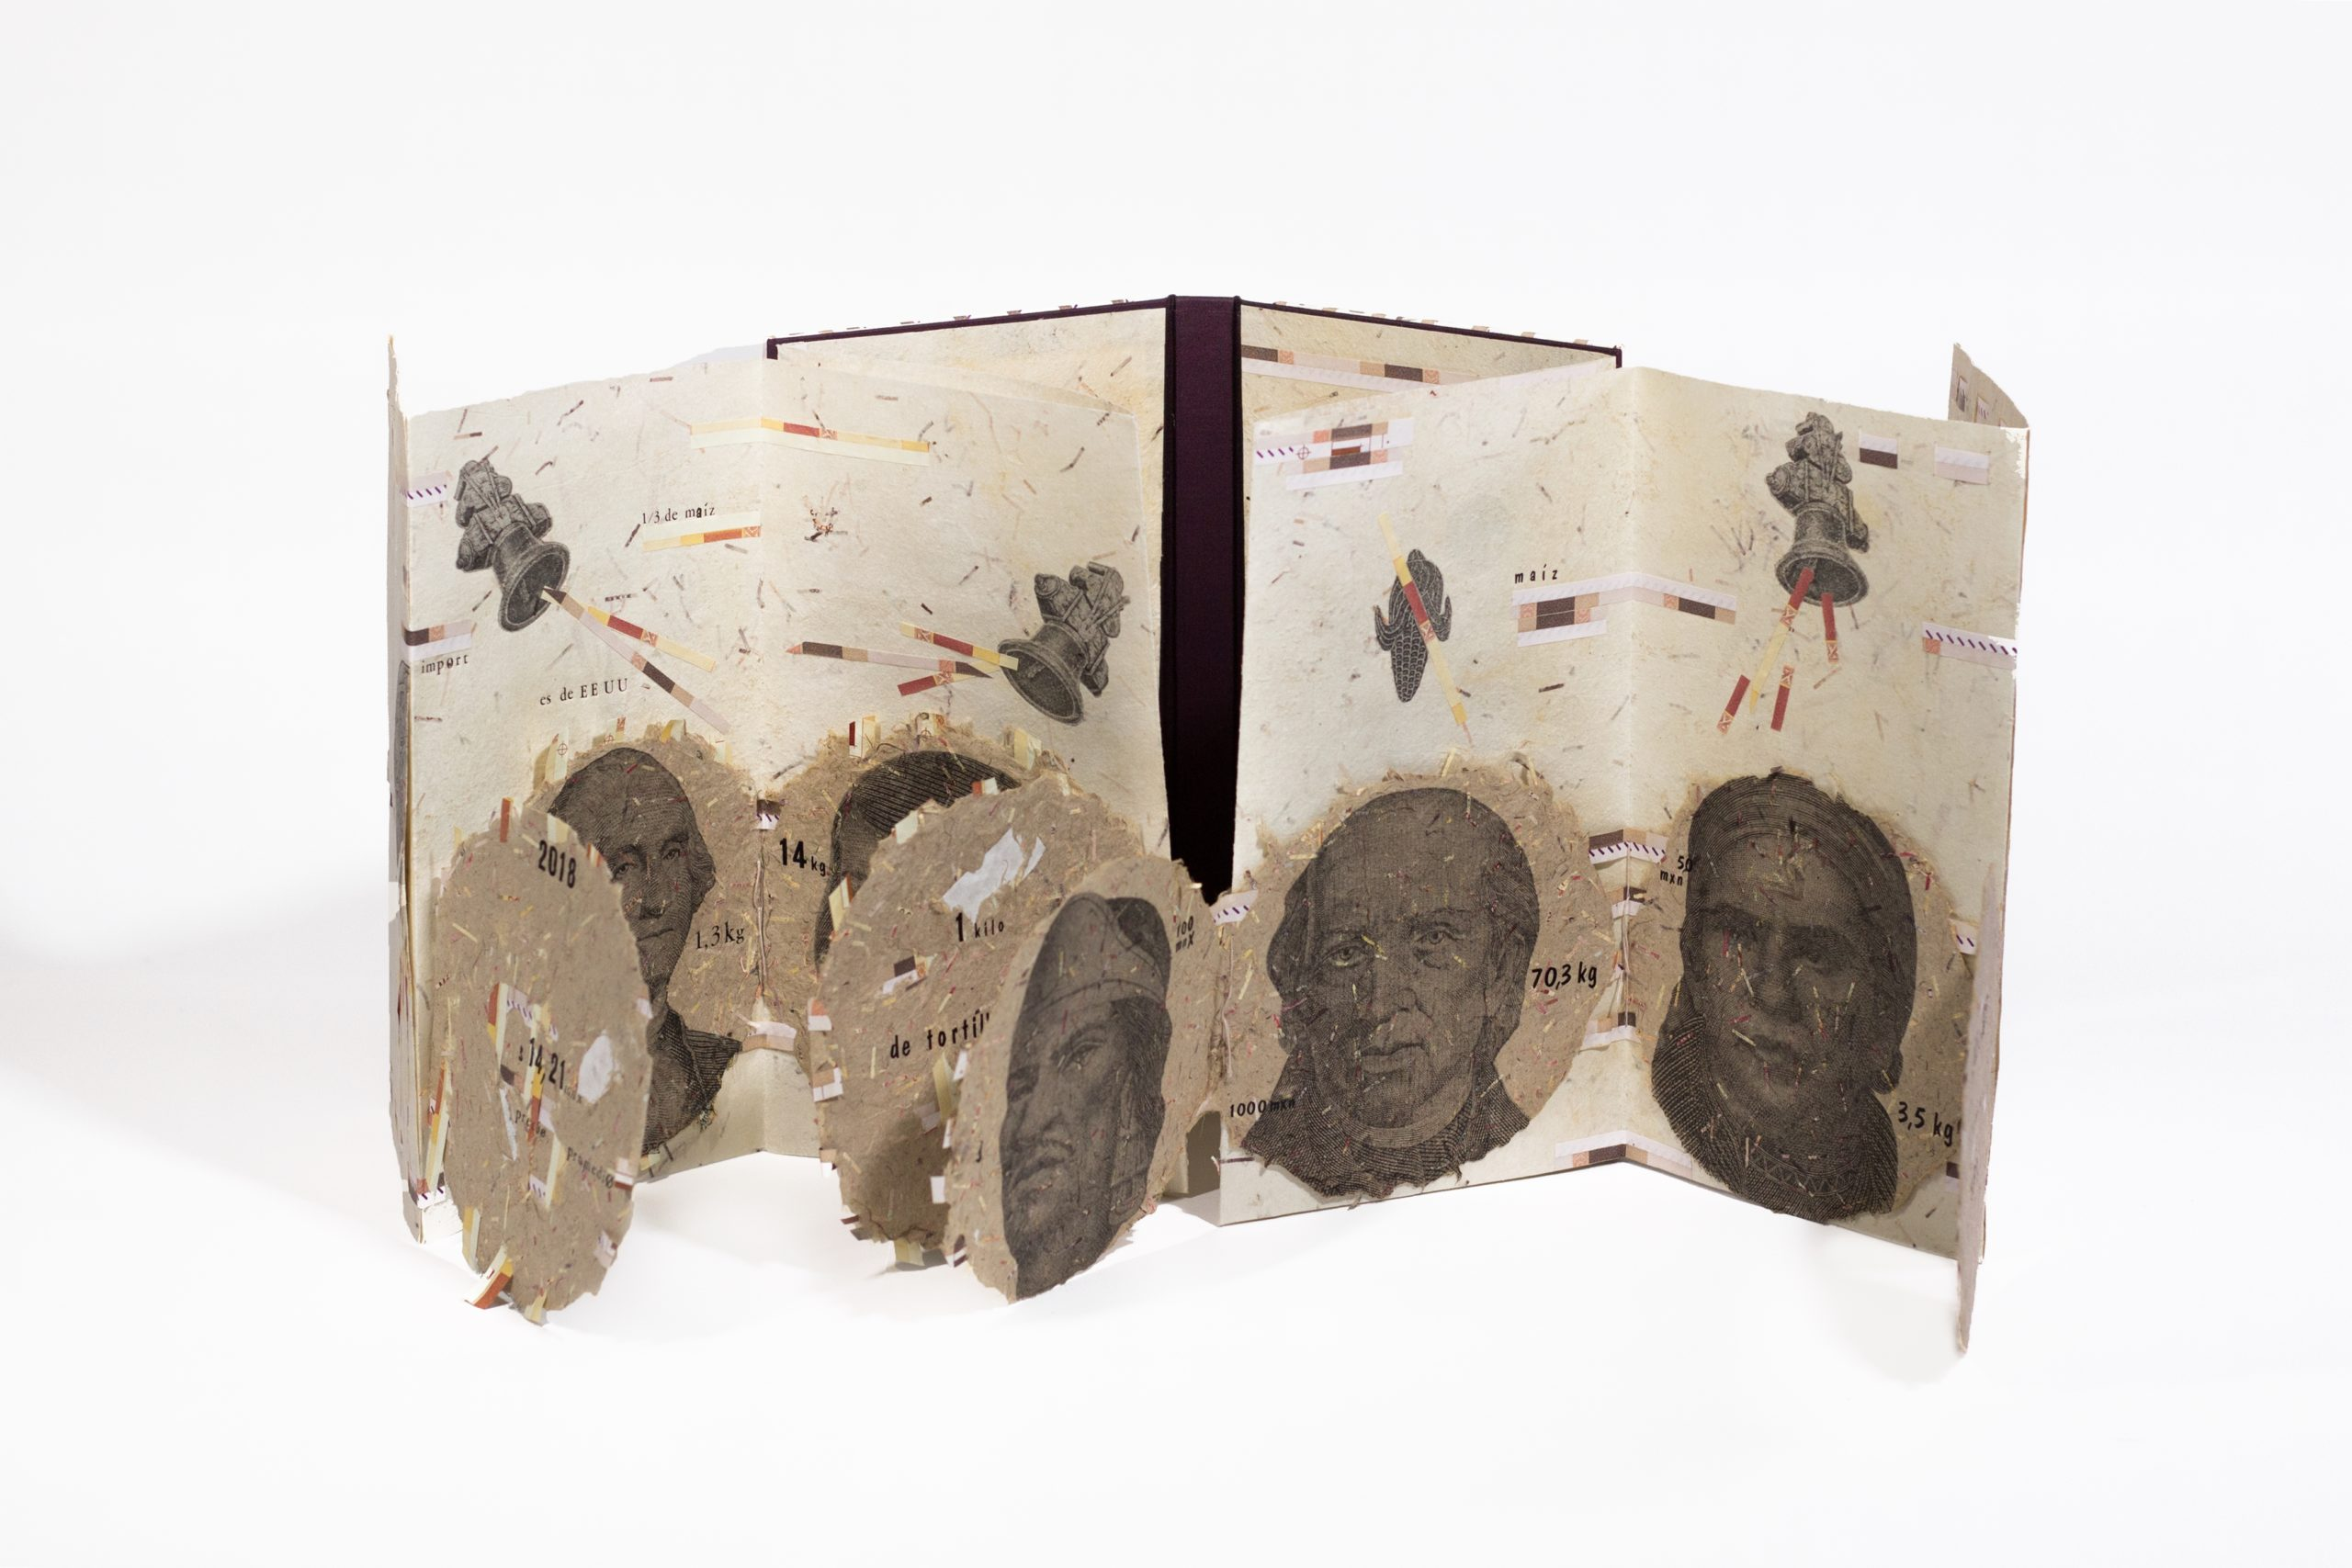 An upright, open book with several image of faces looking at the view